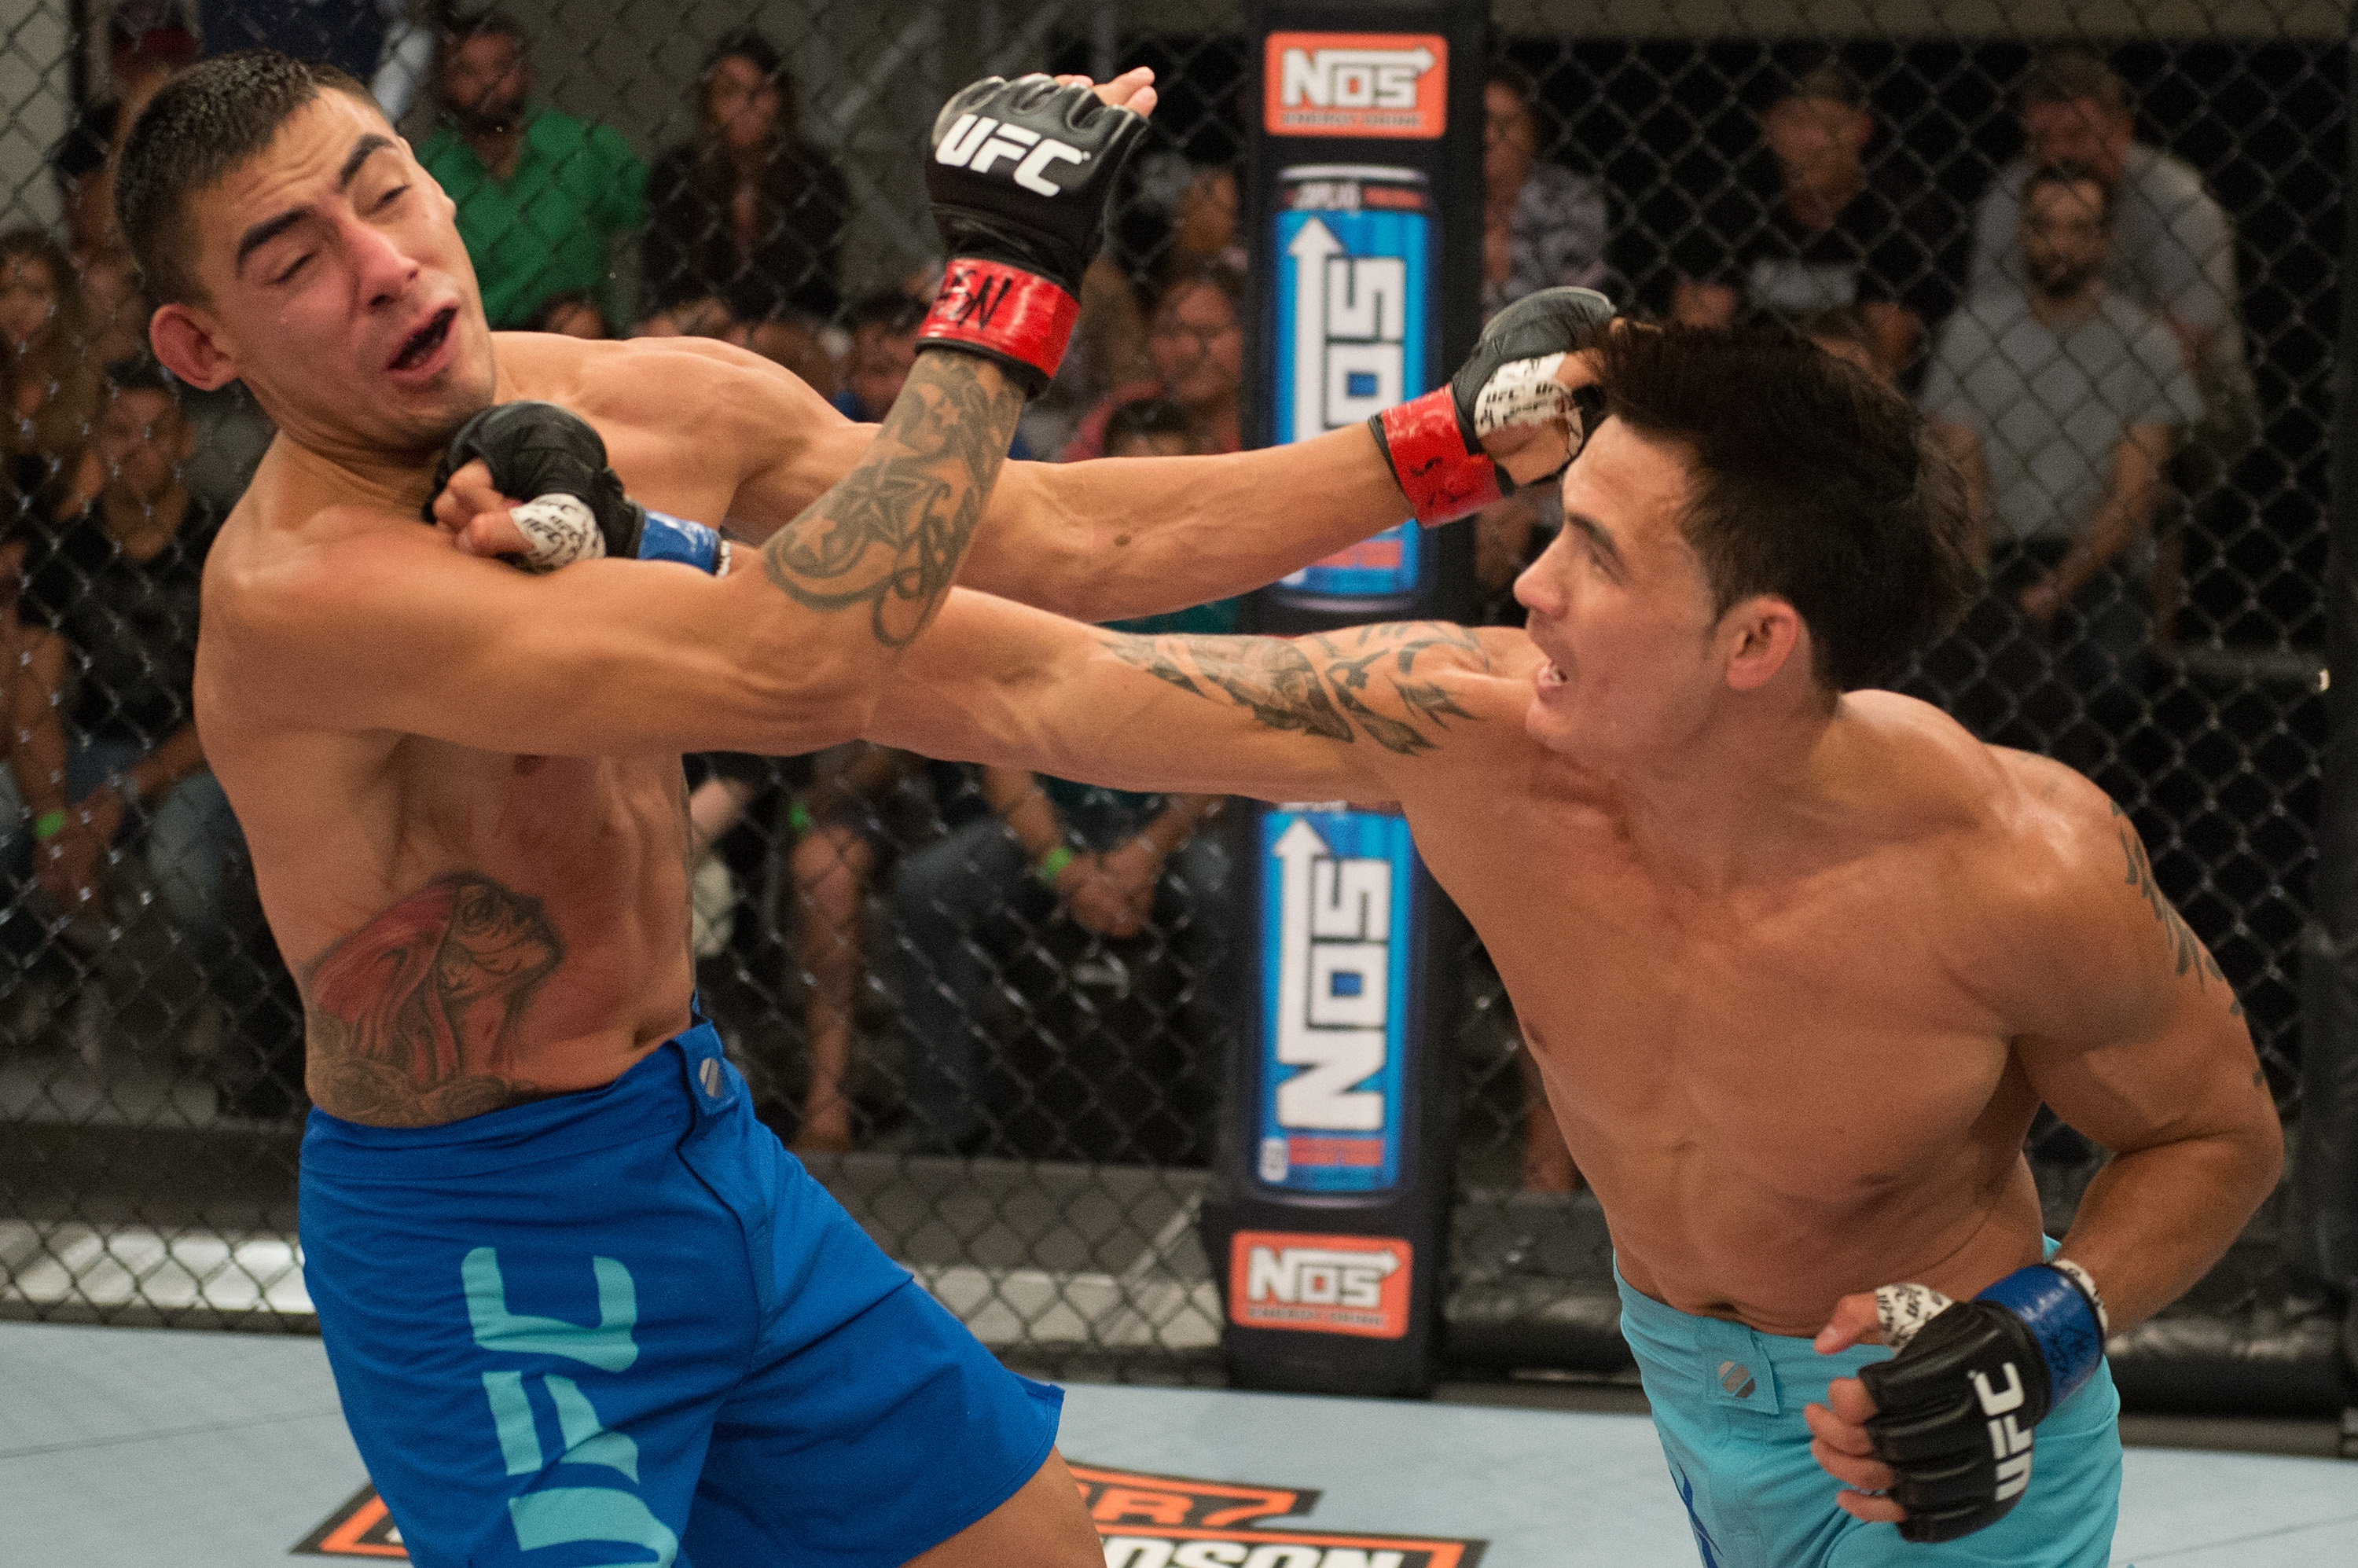 (R-L) Thanh Le punches Andres Quintana during the elimination fights at the UFC TUF Gym on July 17, 2015 in Las Vegas, Nevada. (Photo by Brandon Magnus/Zuffa LLC)